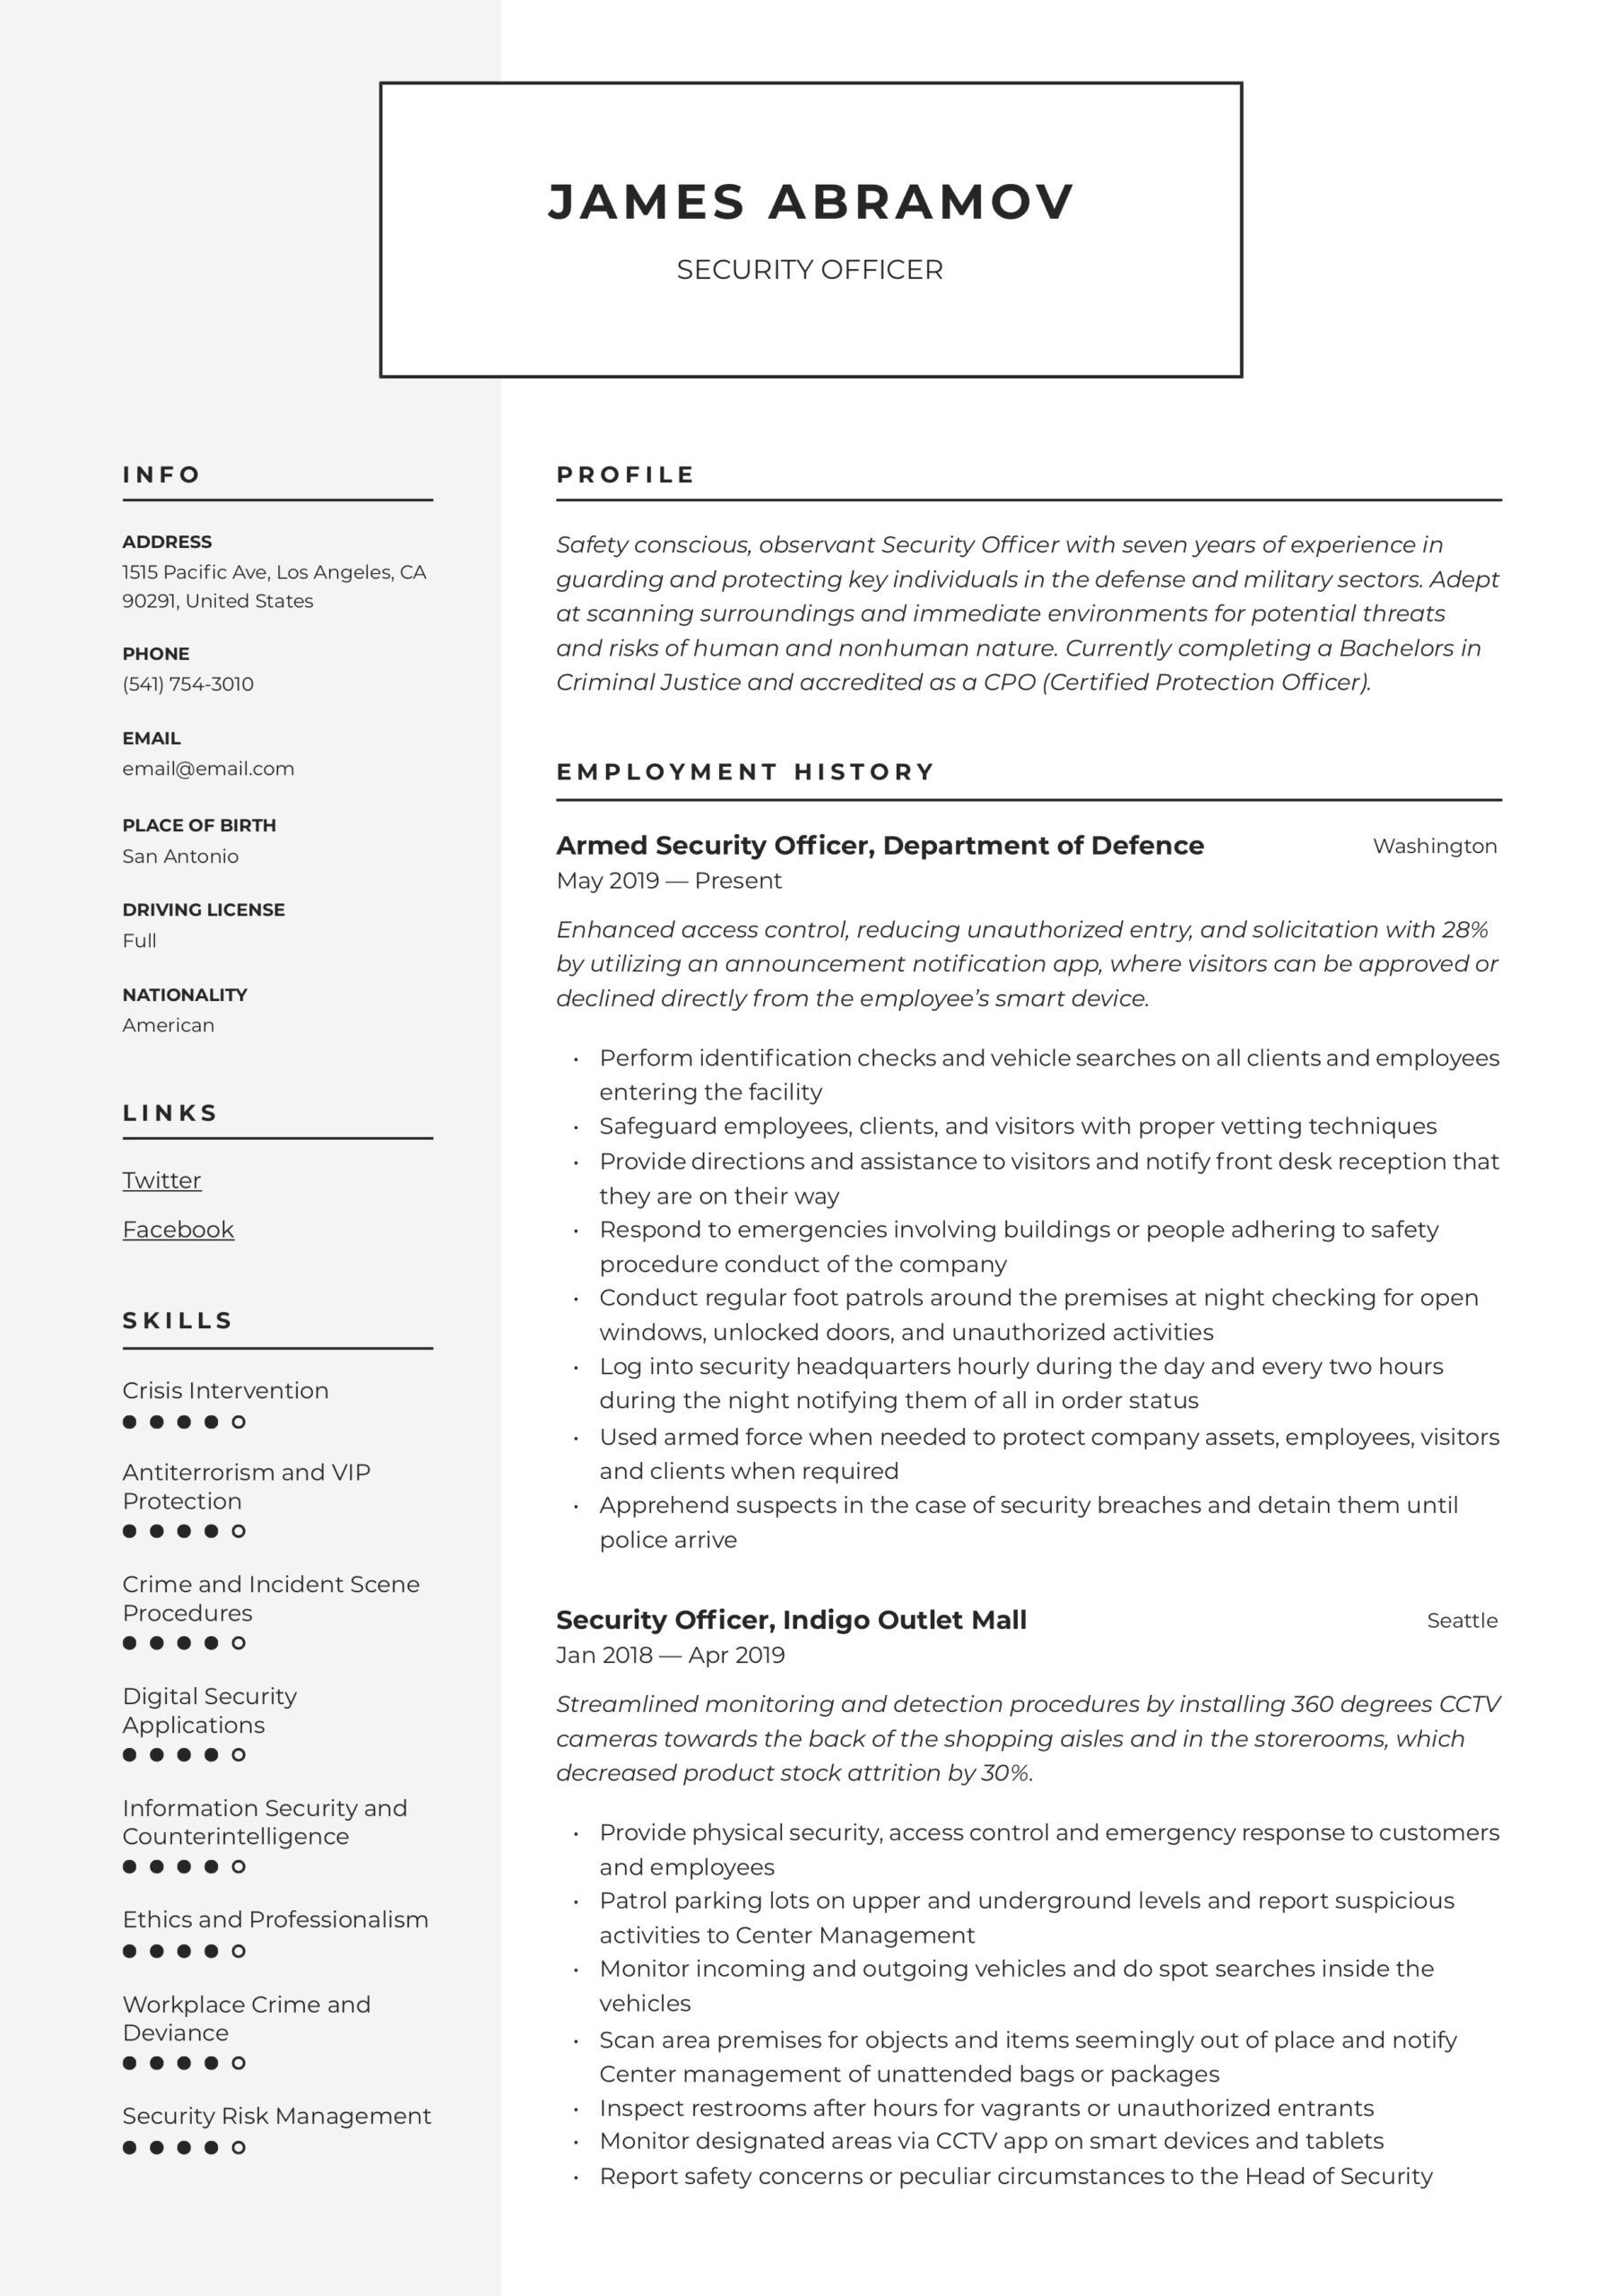 security officer resume writing guide examples protection sample volunteer work hotel Resume Protection Officer Resume Sample